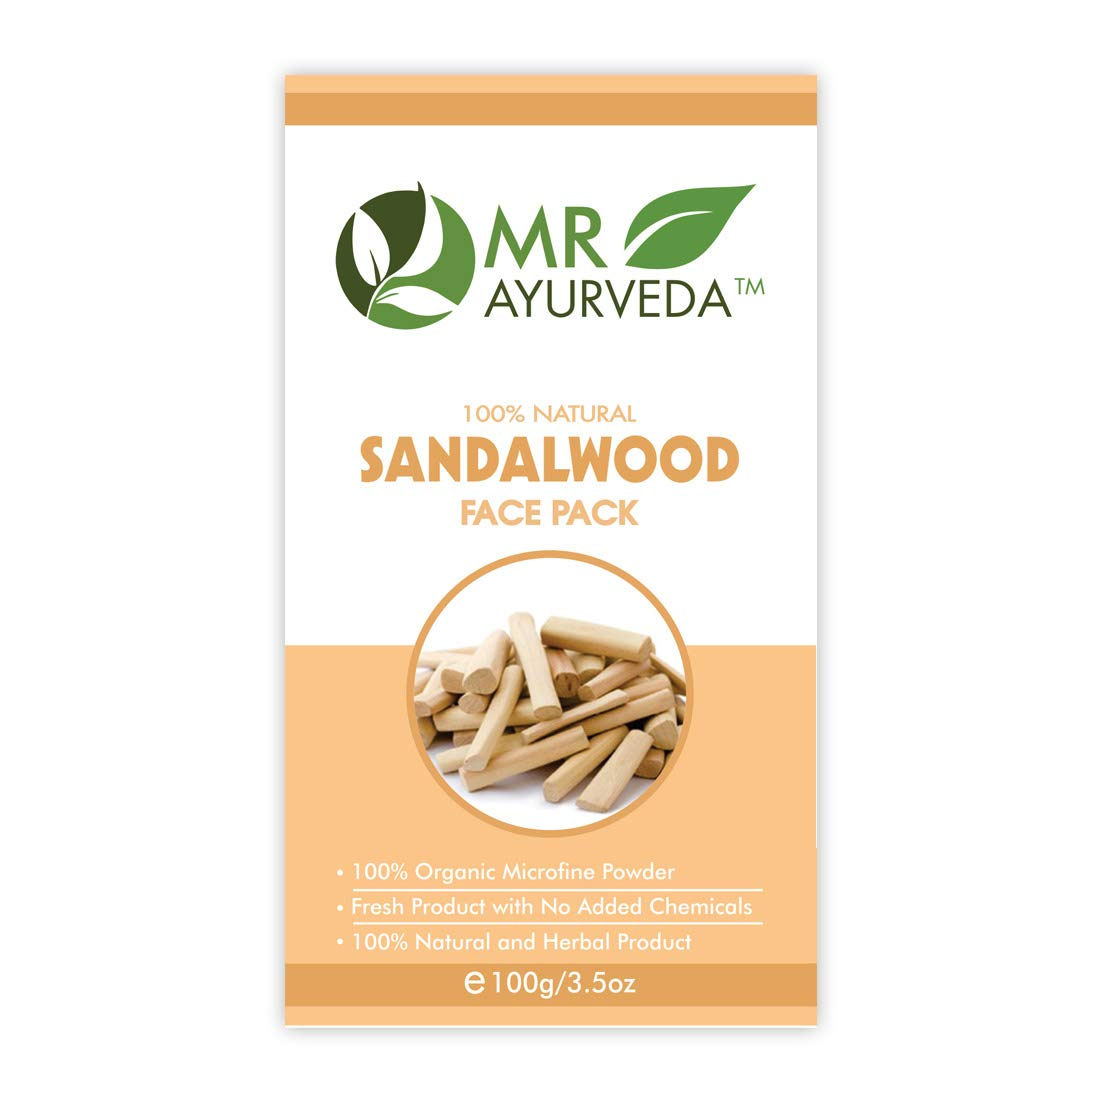 MR Ayurveda Sandalwood Face Pack Powder for Clear, Healthy and Glowing  Skin, 10 Gm